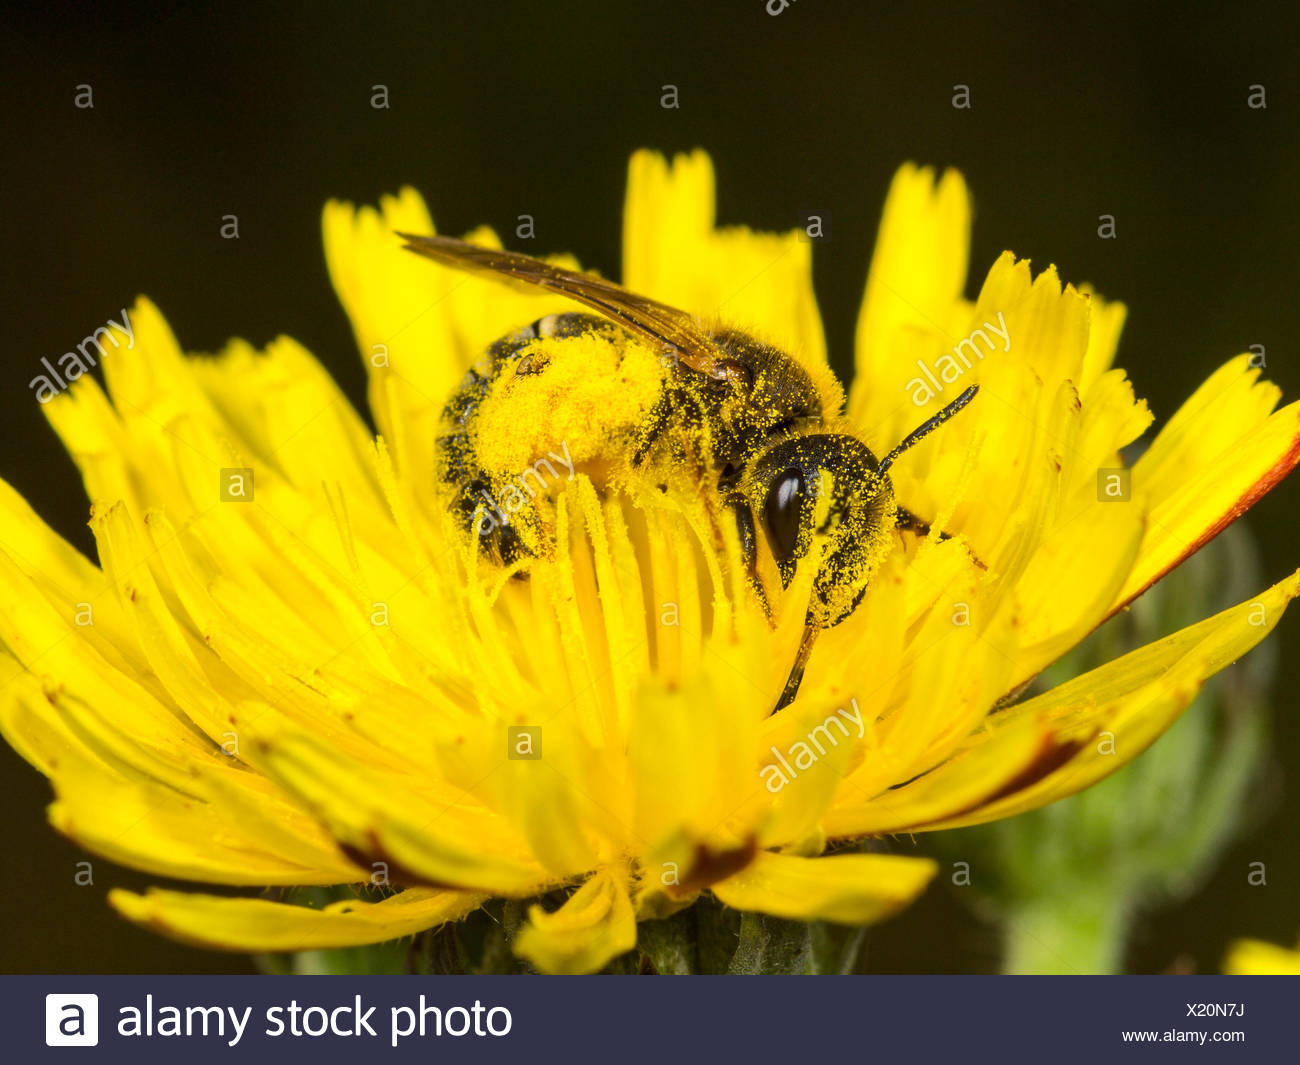 Sweat bee (Halictus scabiosae), female foraging on crepis, Germany - Stock Image